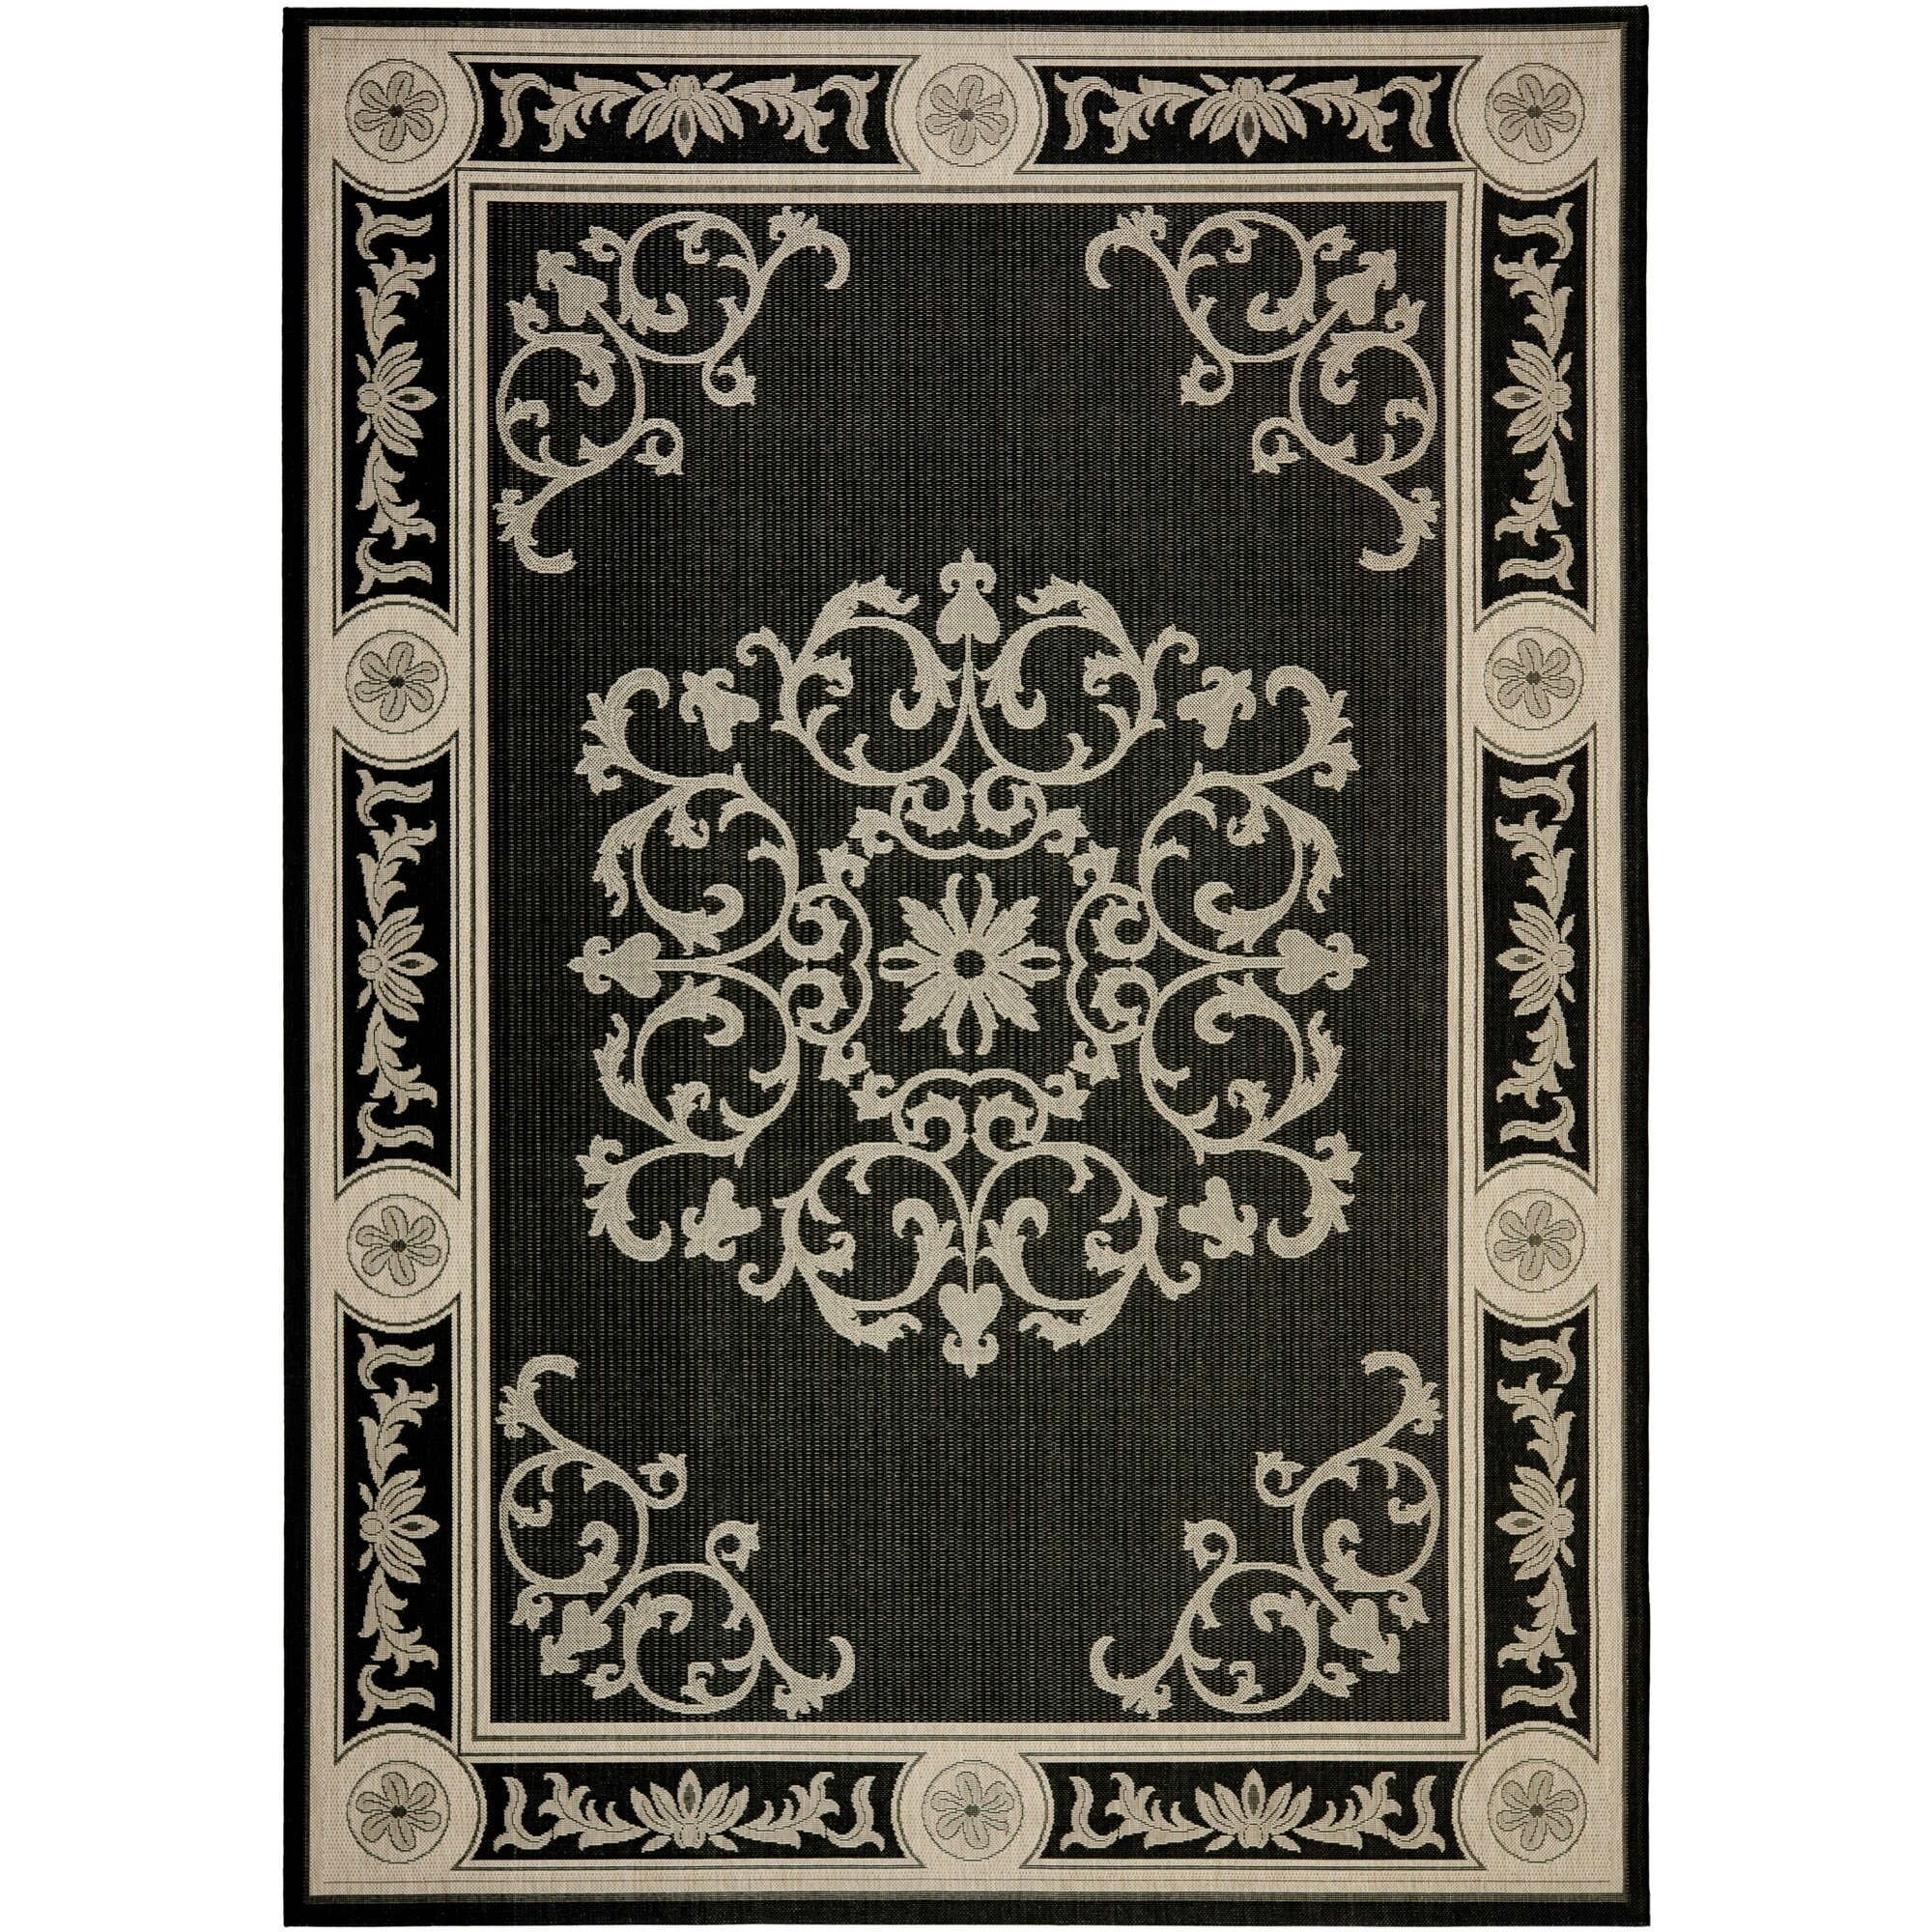 Safavieh Outdoor Living Cooley Black White Dining Set 5: Safavieh Courtyard Black & Sand Outdoor Area Rug & Reviews